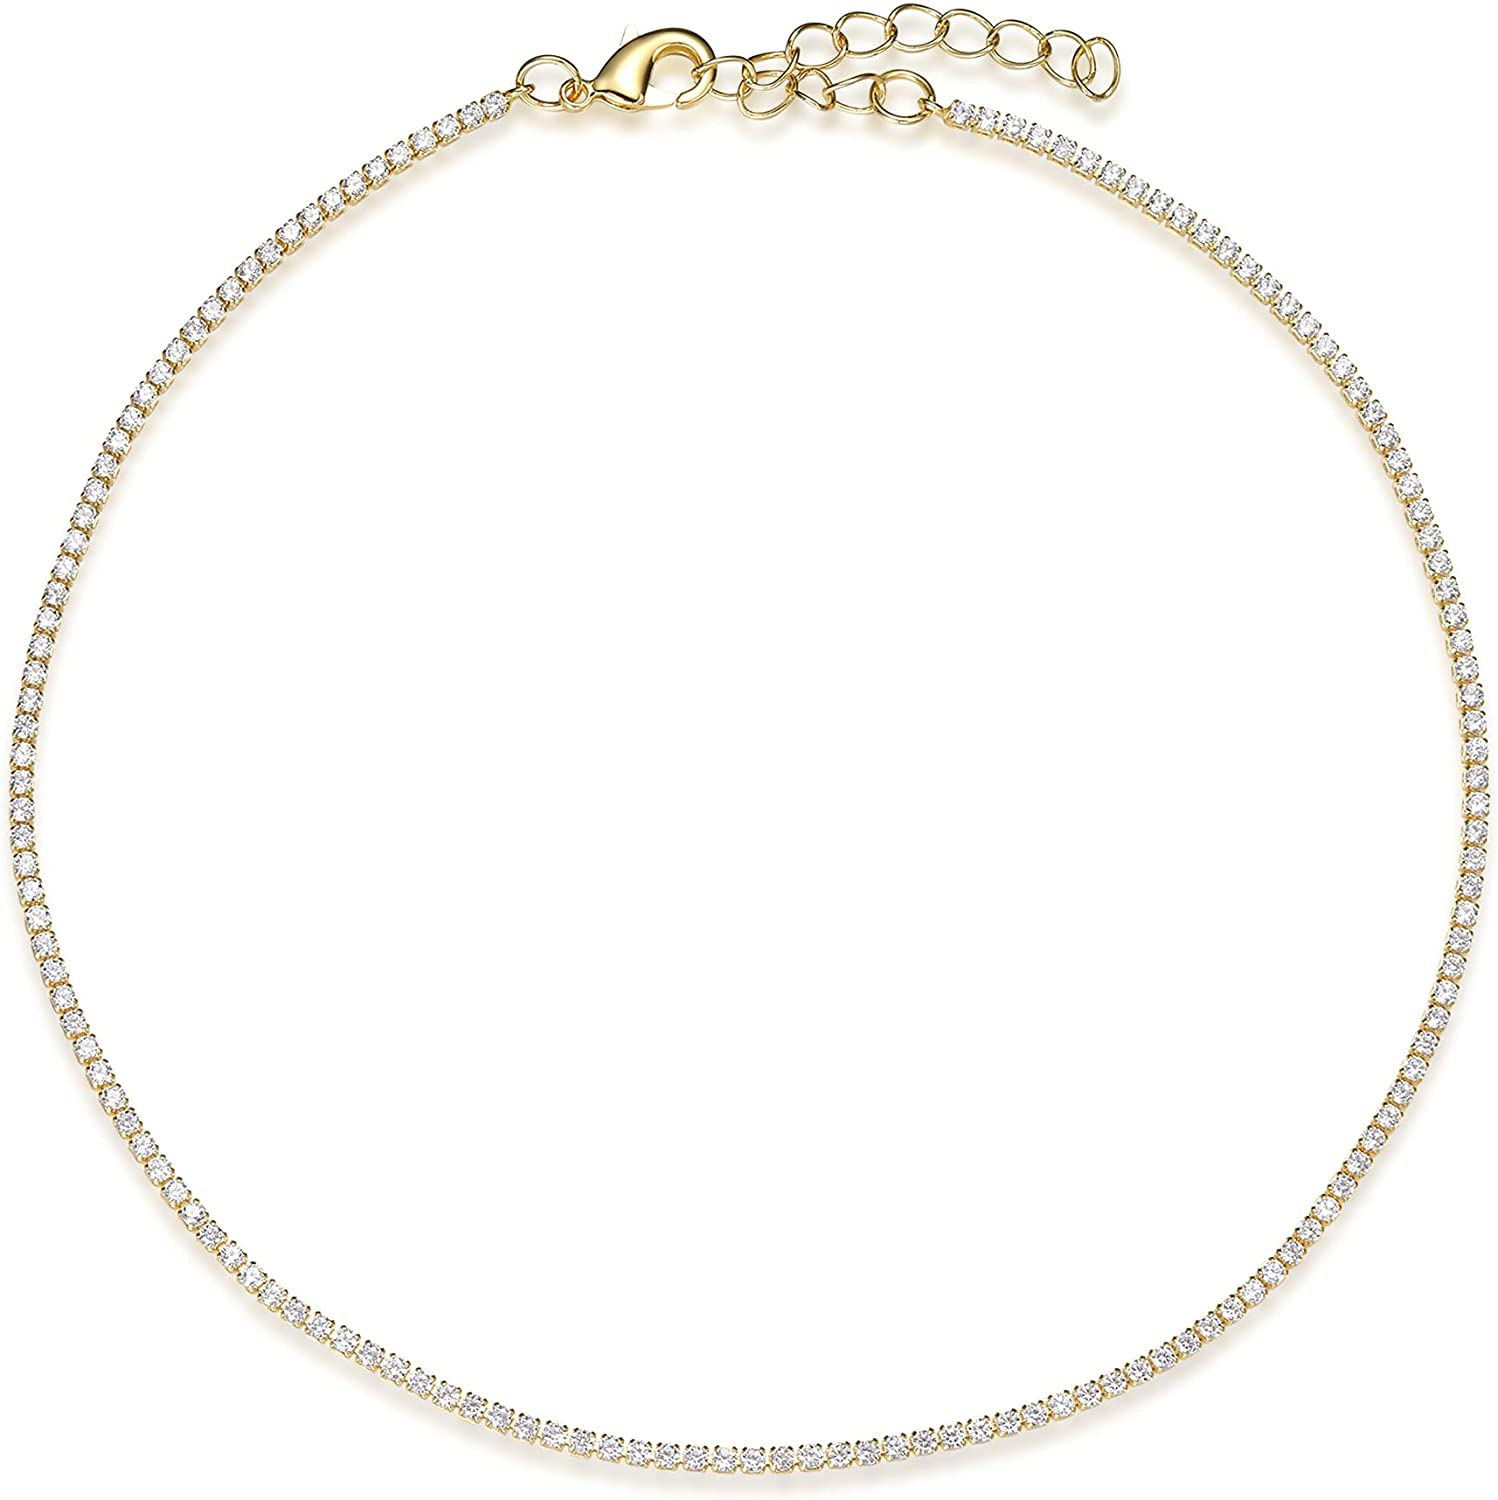 Vescence Cubic Zirconia Choker Adjustable 12-14 Inch   1.75mm Round Cut Tennis CZ Chain Necklace Gold for Layering   Bridal Party Gold Jewelry Hypoallergenic